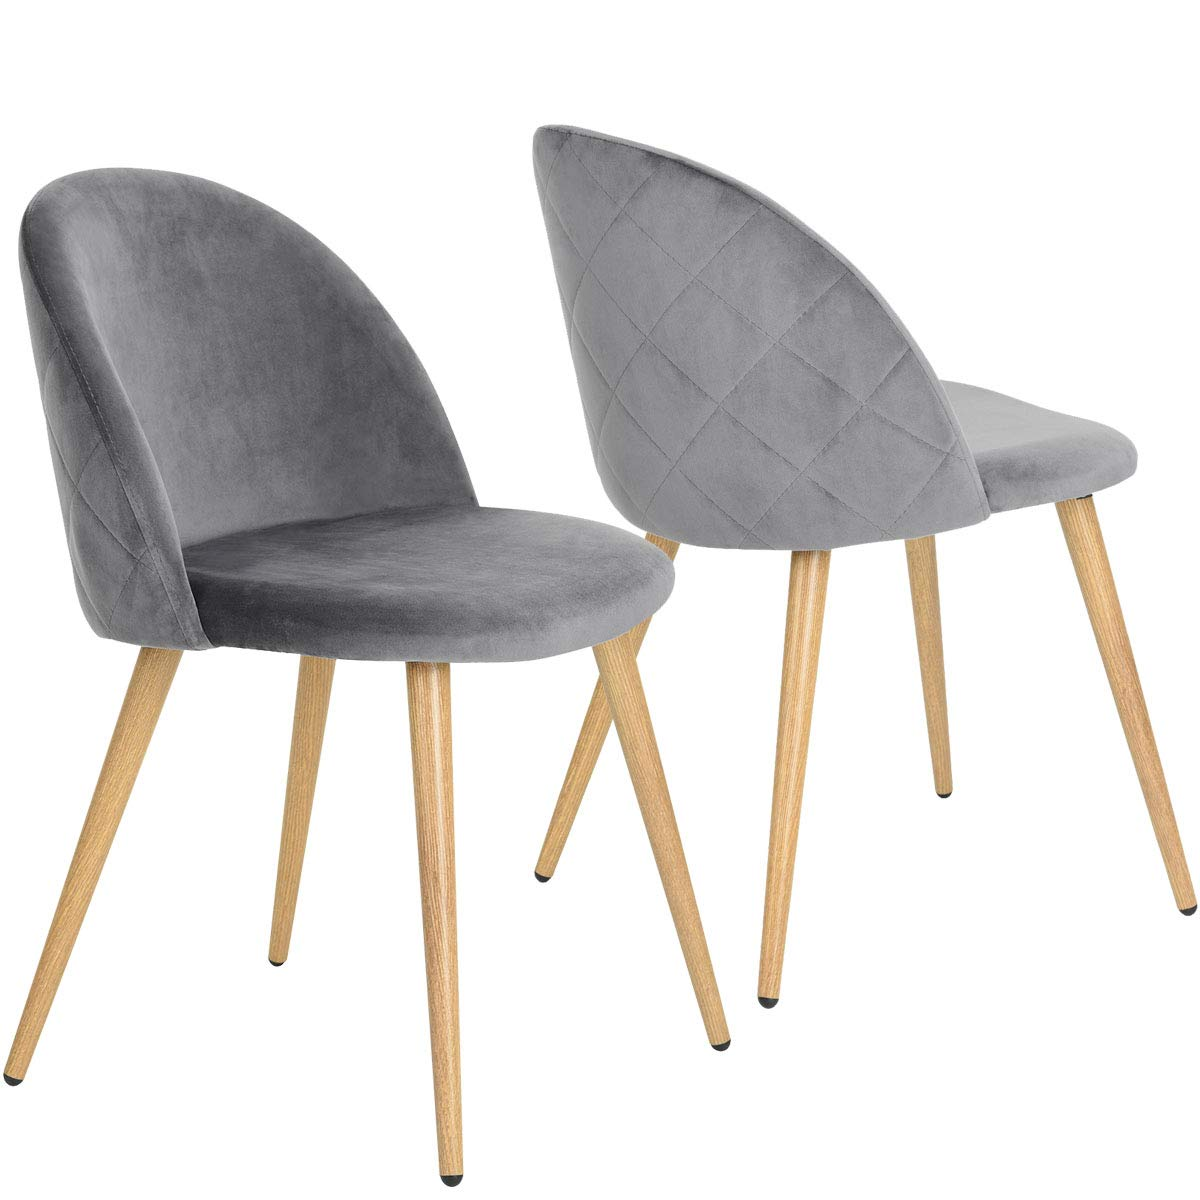 Coavas Dining Chairs Soft Velvet Kitchen Chairs Living Room Lounge Leisure Chairs with Wooden Style Metal Legs for Dining Room and Bedroom Set of 2 Grey  sc 1 st  Amazon UK & Coavas Dining Chairs Soft Velvet Kitchen Chairs Living Room Lounge ...